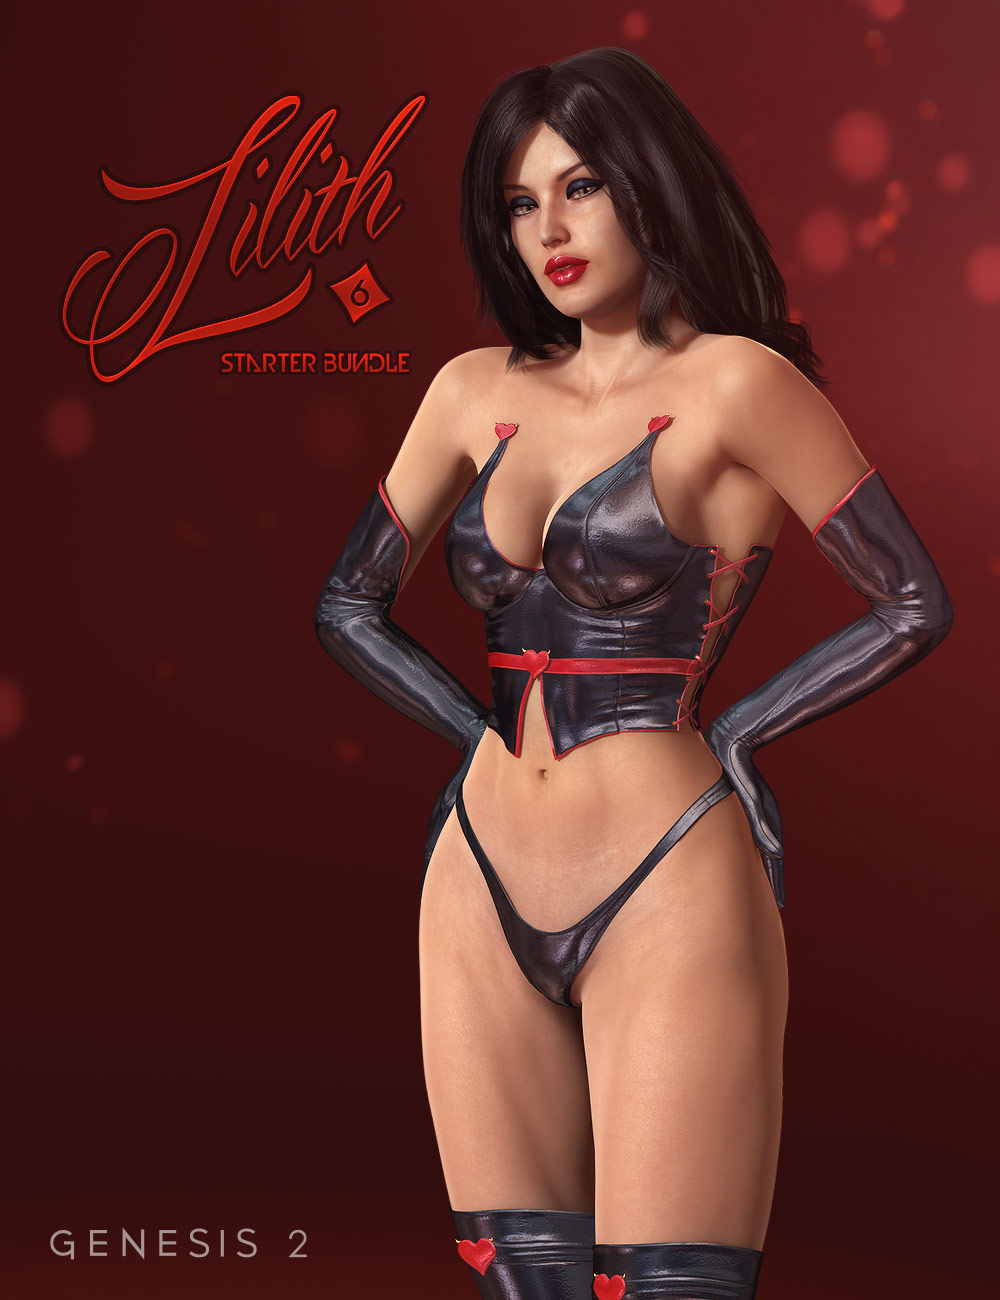 Lilith 6 Starter Bundle by: , 3D Models by Daz 3D